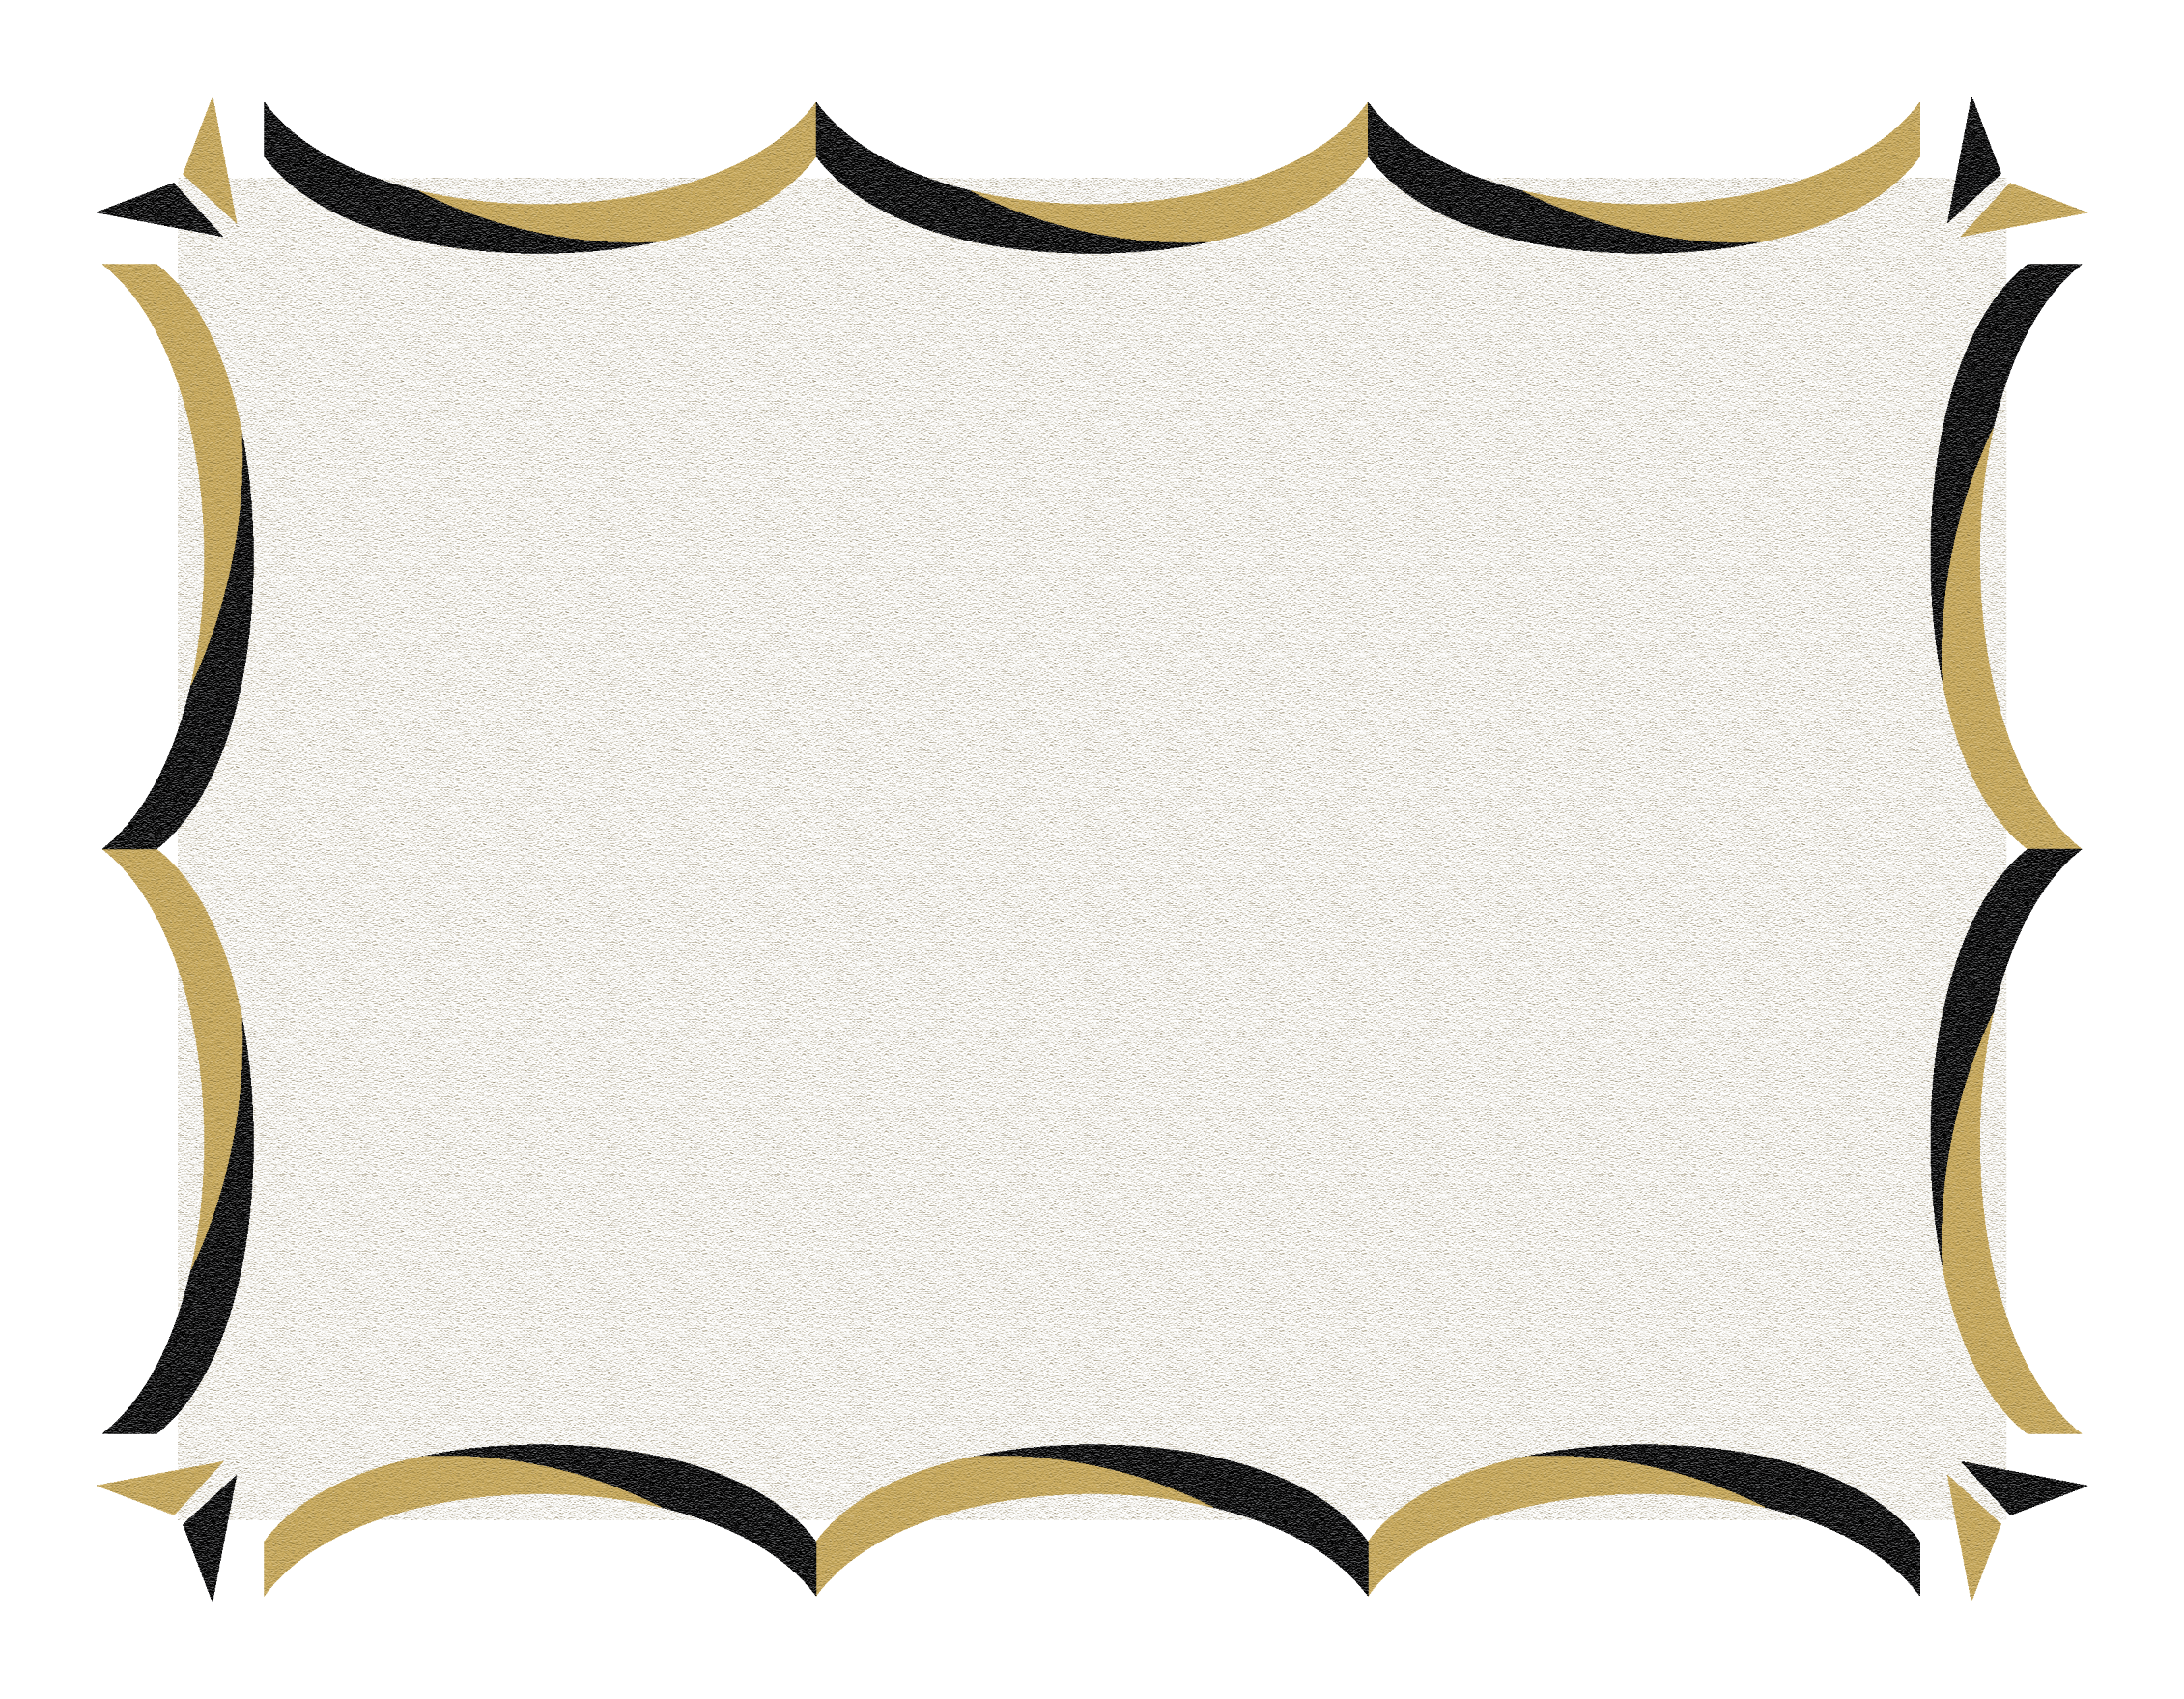 Certificate Border 3 Black And Gold Png Png